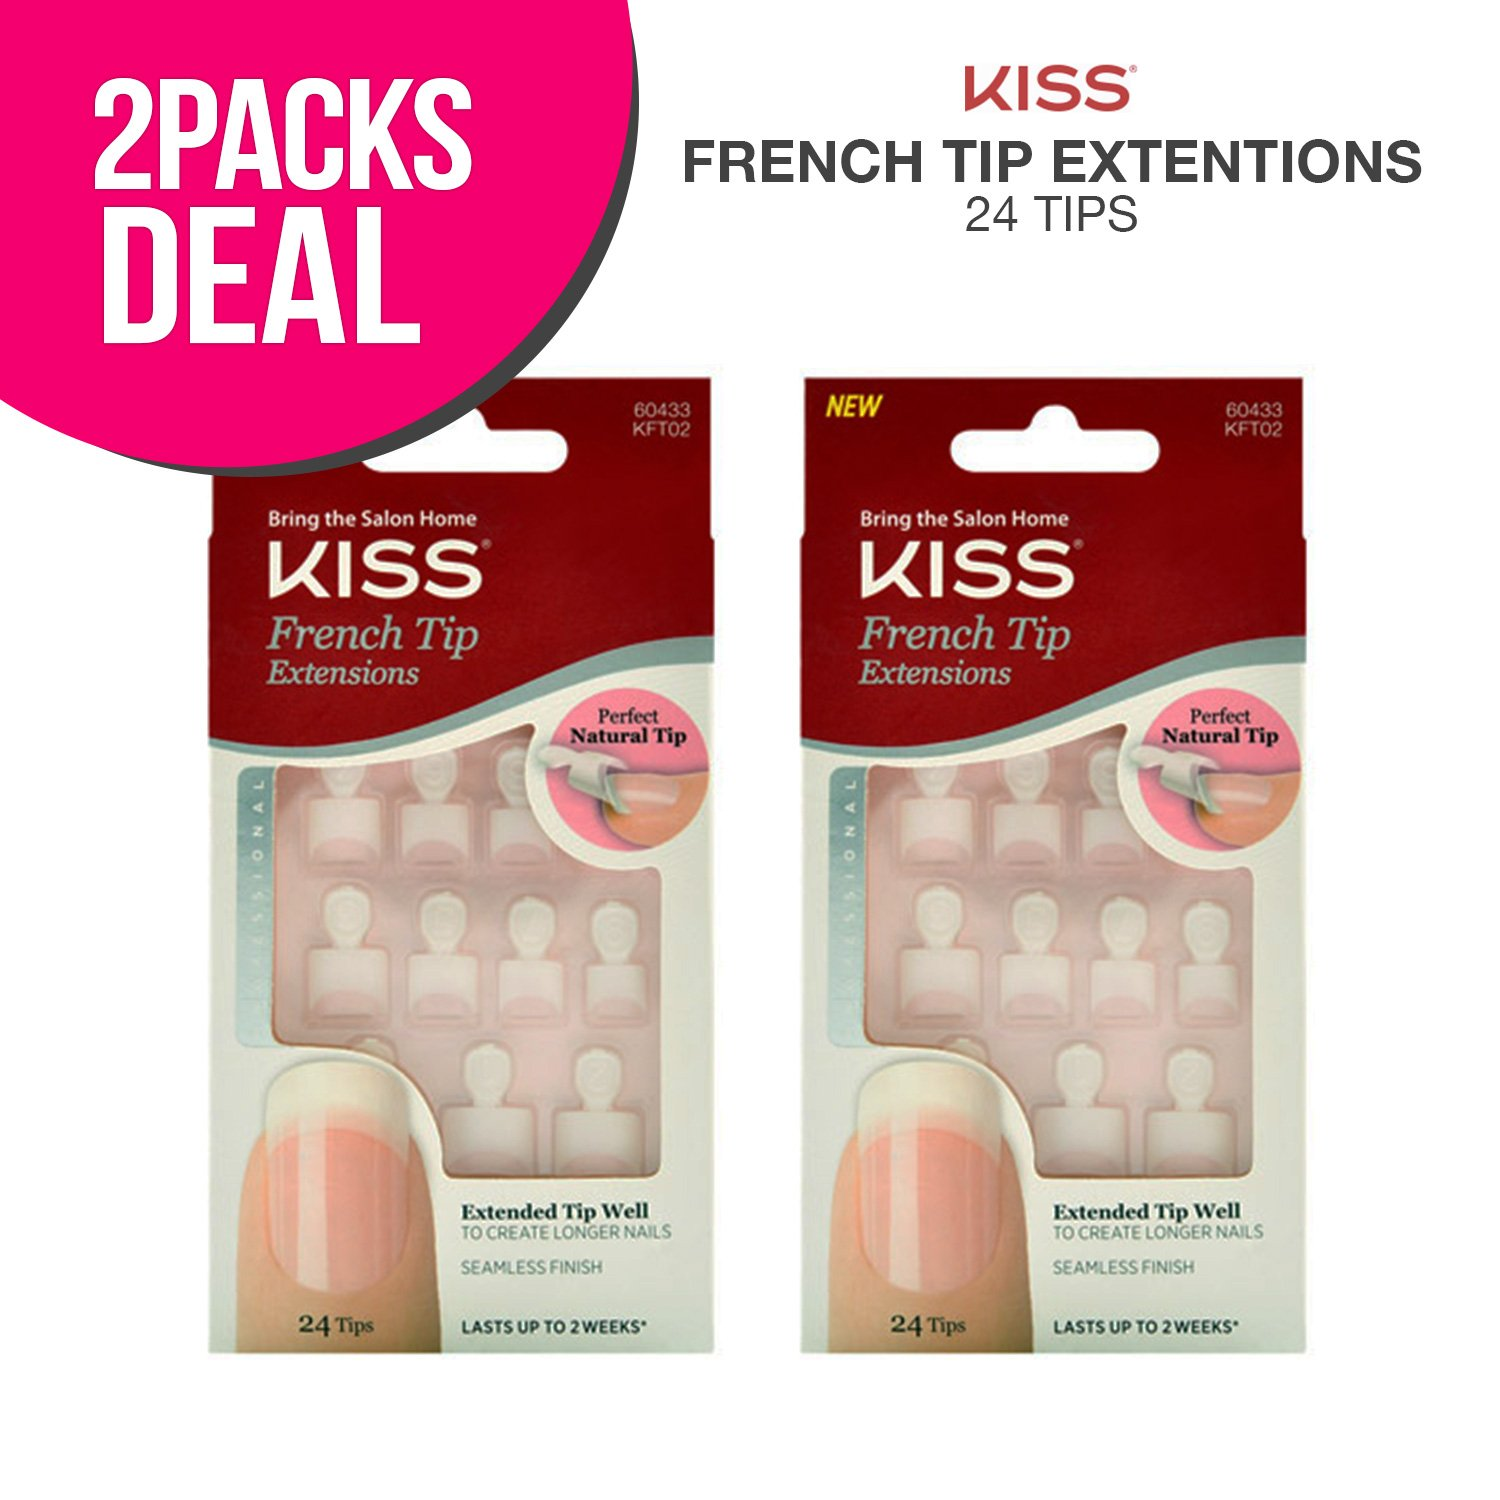 Amazon.com : 2 PACK !! Kiss French Tip Extensions 24 Tips (KFT02 ...